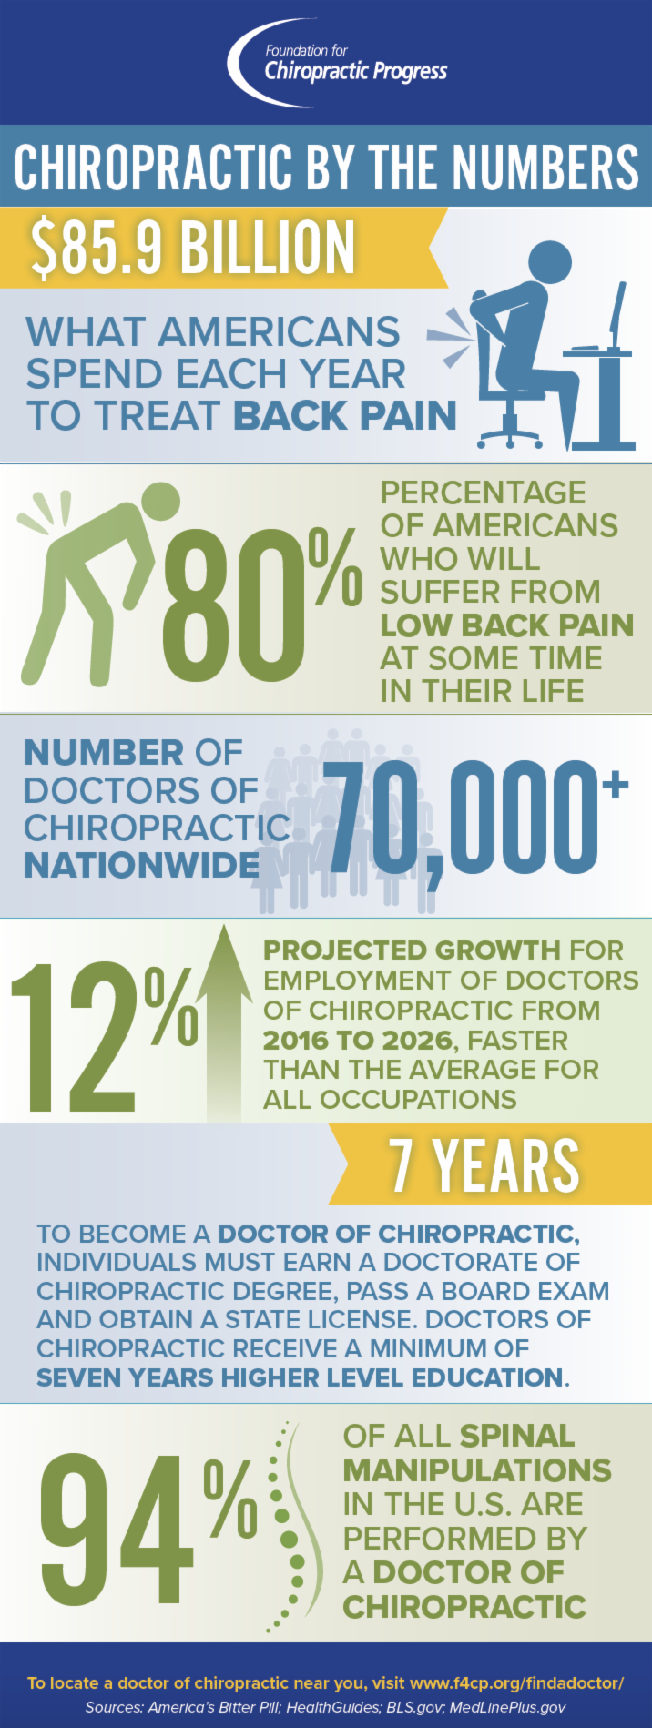 Chiropractic by the Numbers